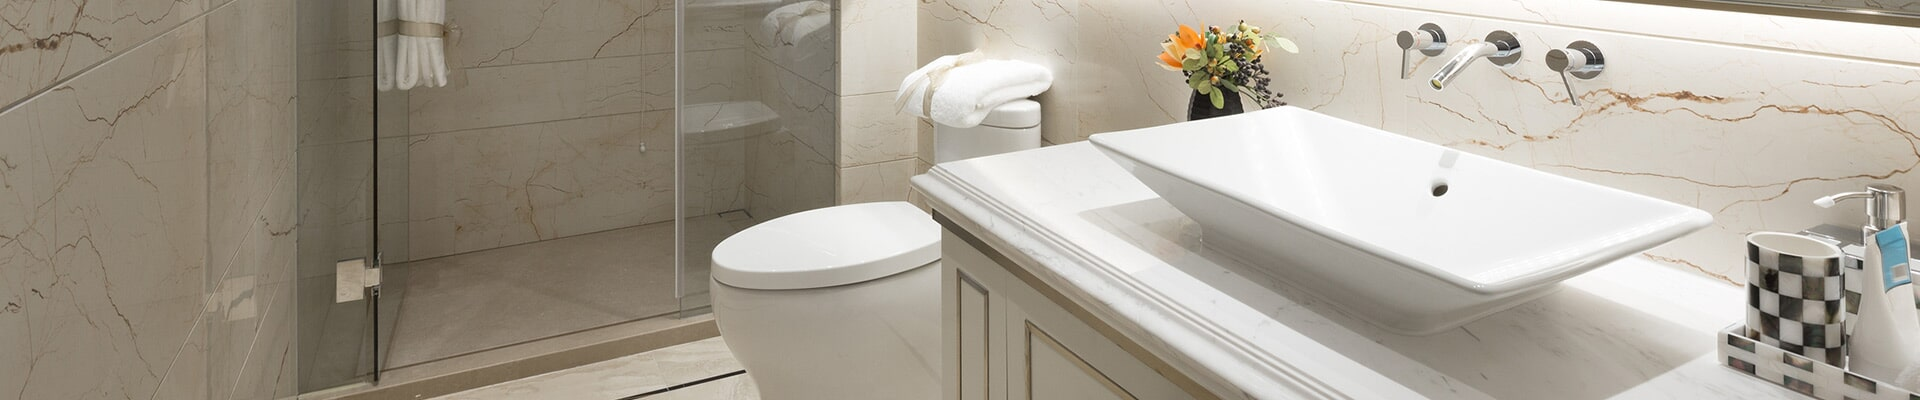 Remodeling ContractorOklahoma CityMidwest Tile And Remodeling Tile - Bathroom remodel norman ok